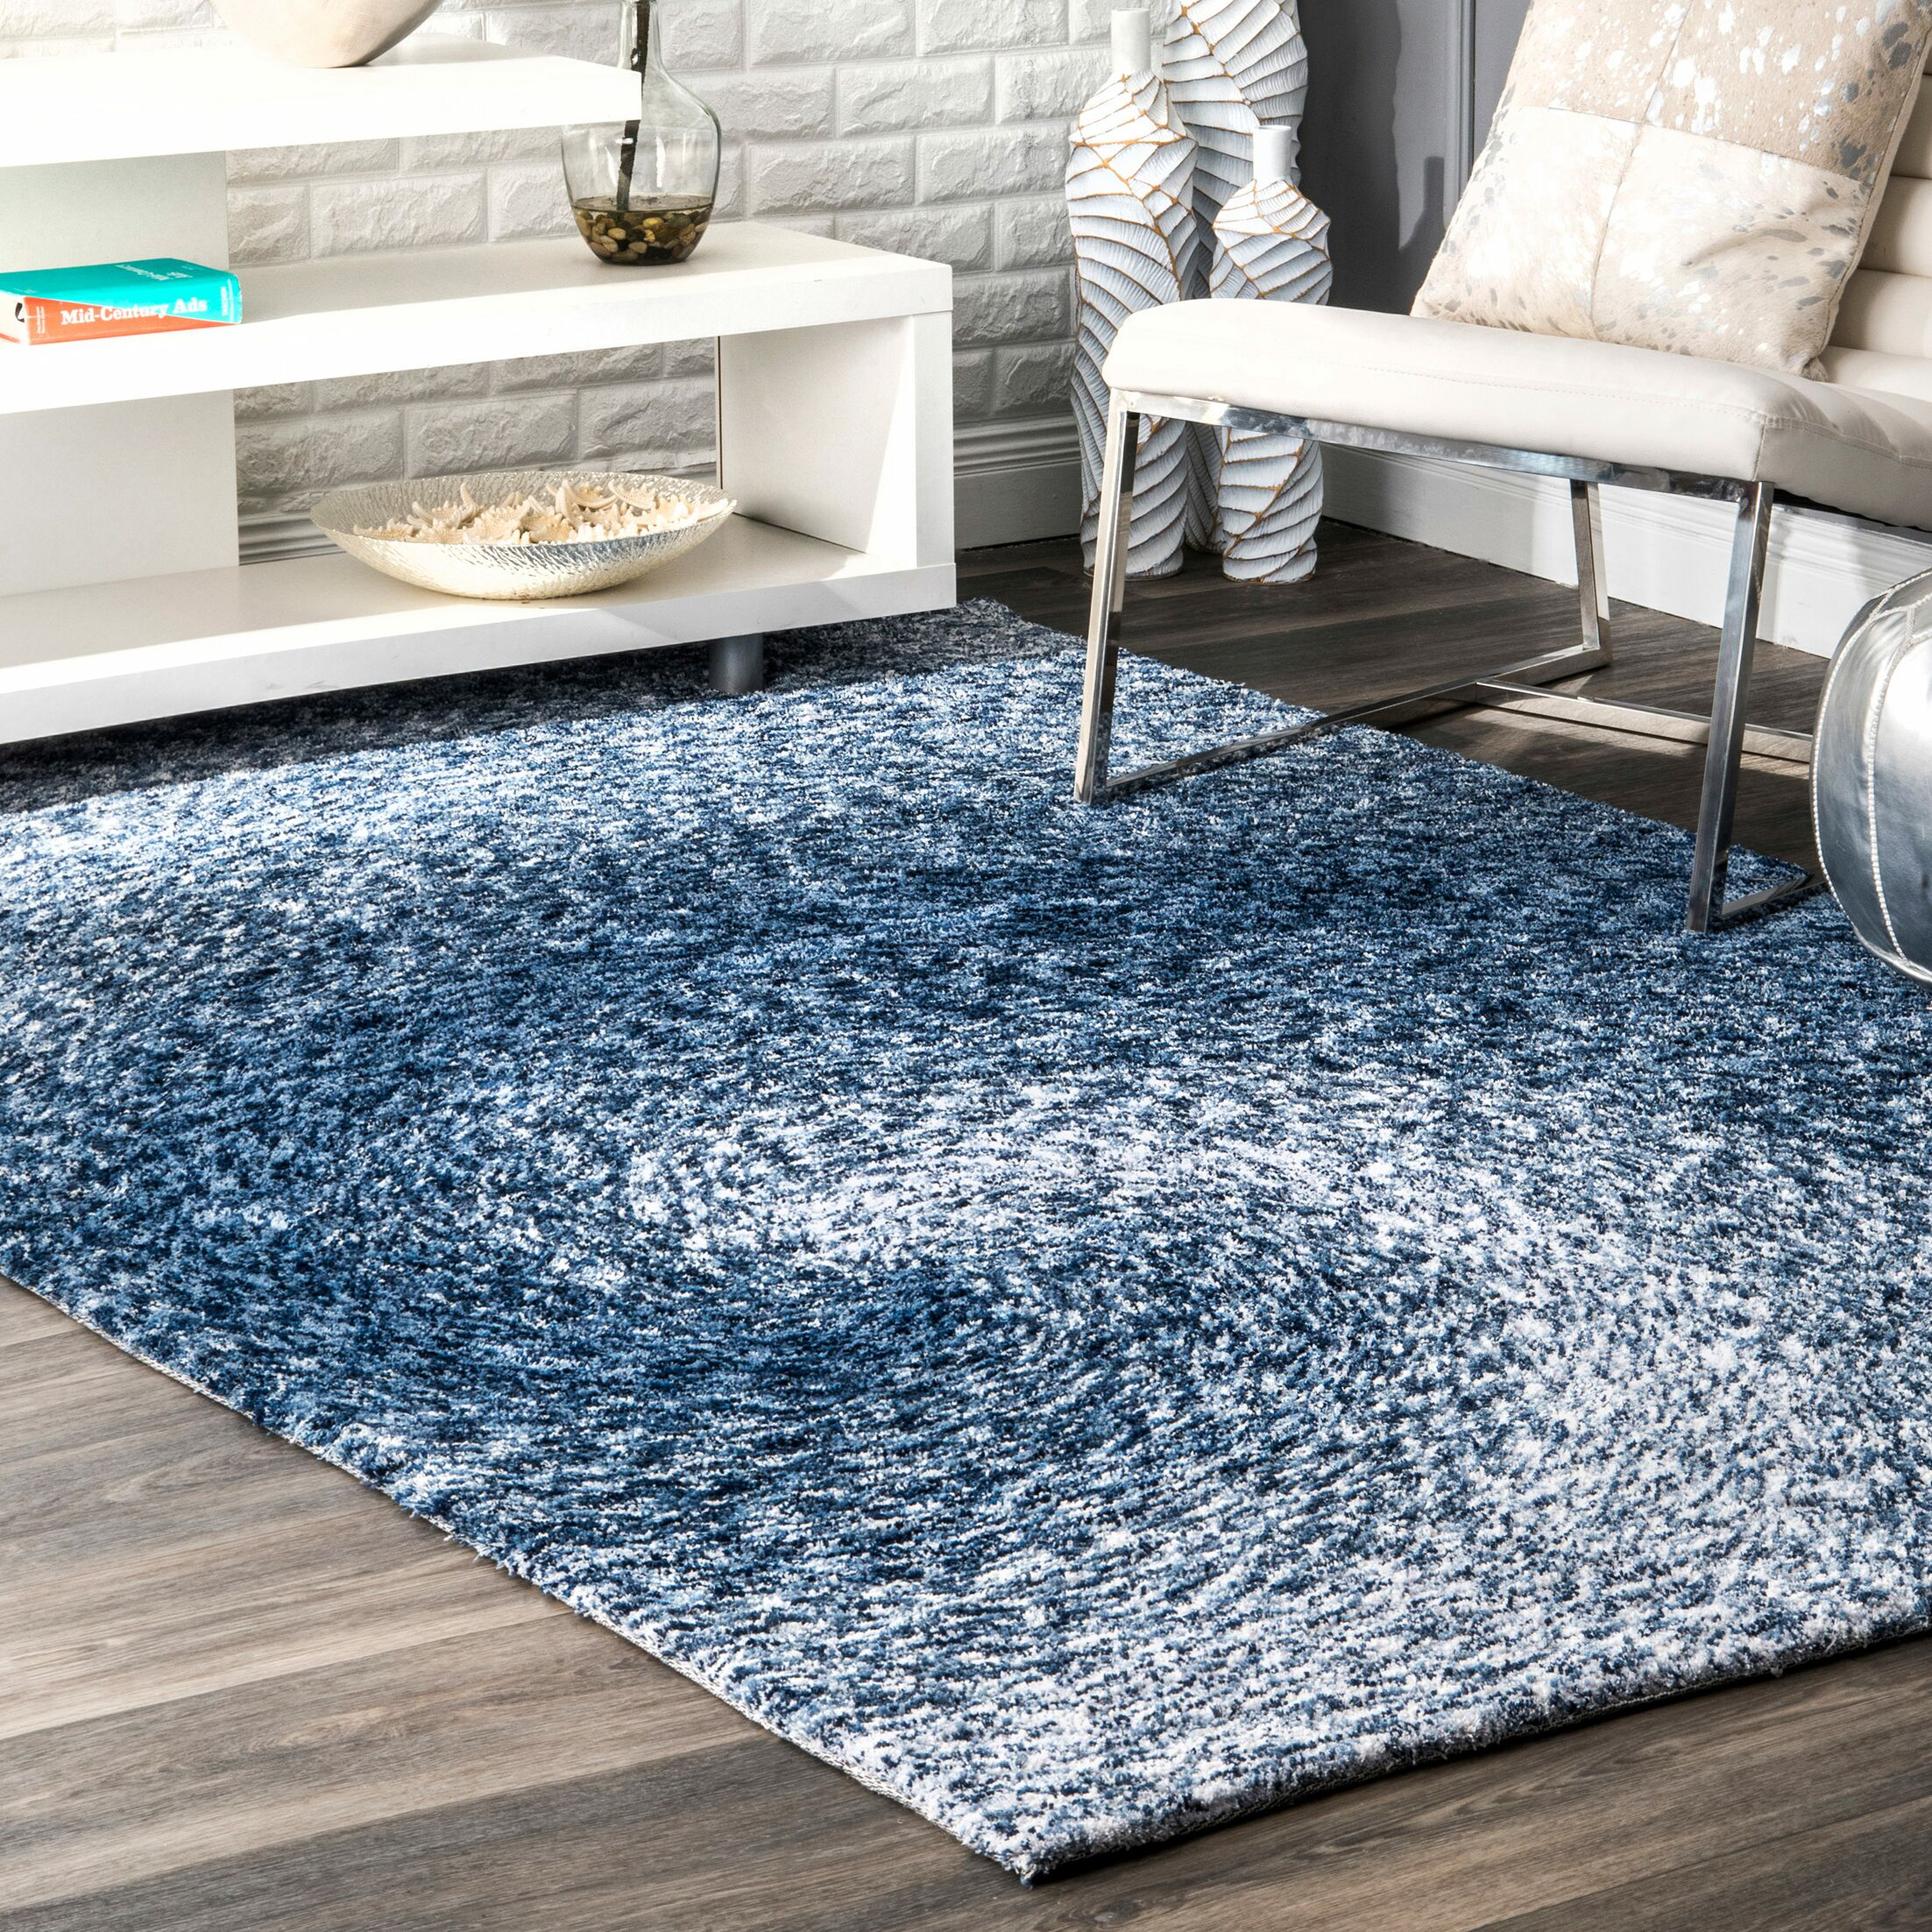 Salina Hand-Tufted Blue Area Rug Rug Size: Rectangle 7'6